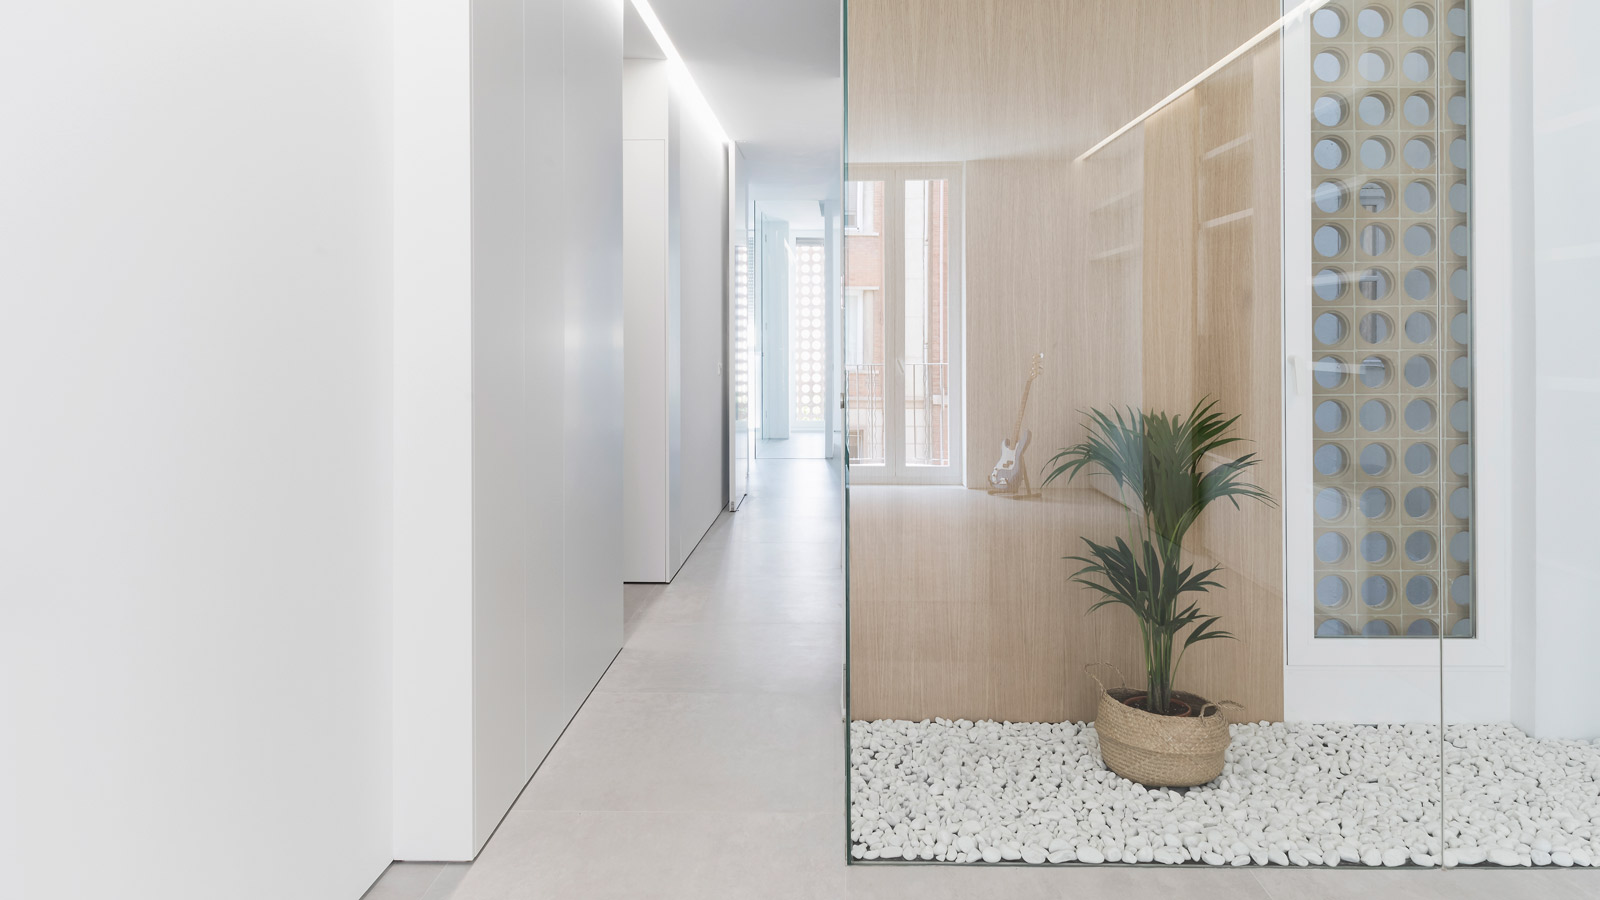 PORCELANOSA Group Projects: A bright, harmonious home in the heart of Valencia